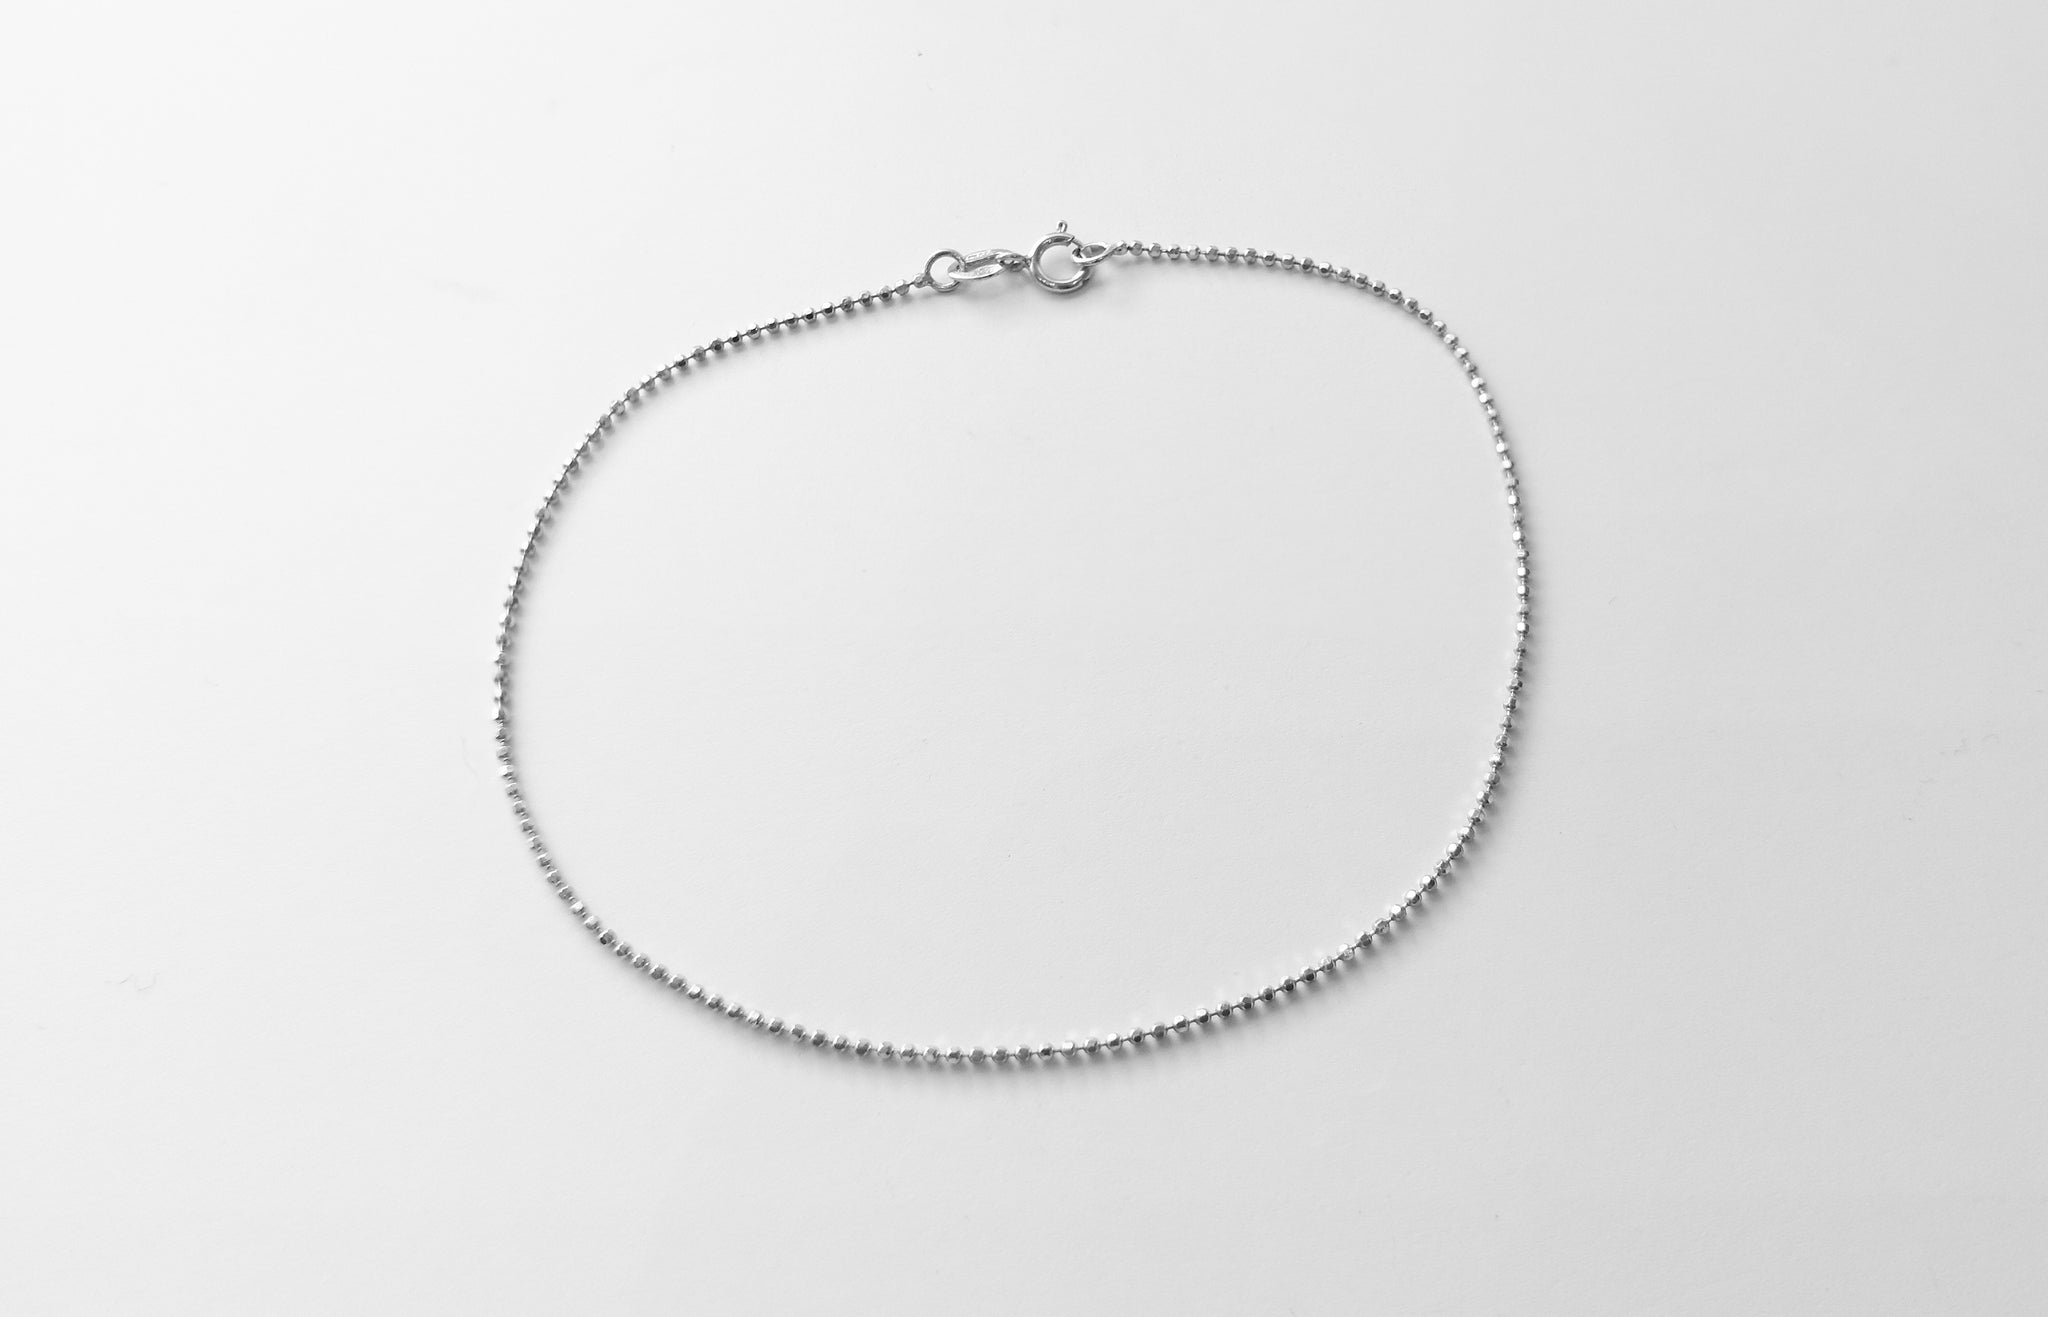 White Gold Bracelet 18ct (0.9g) LBR-5849